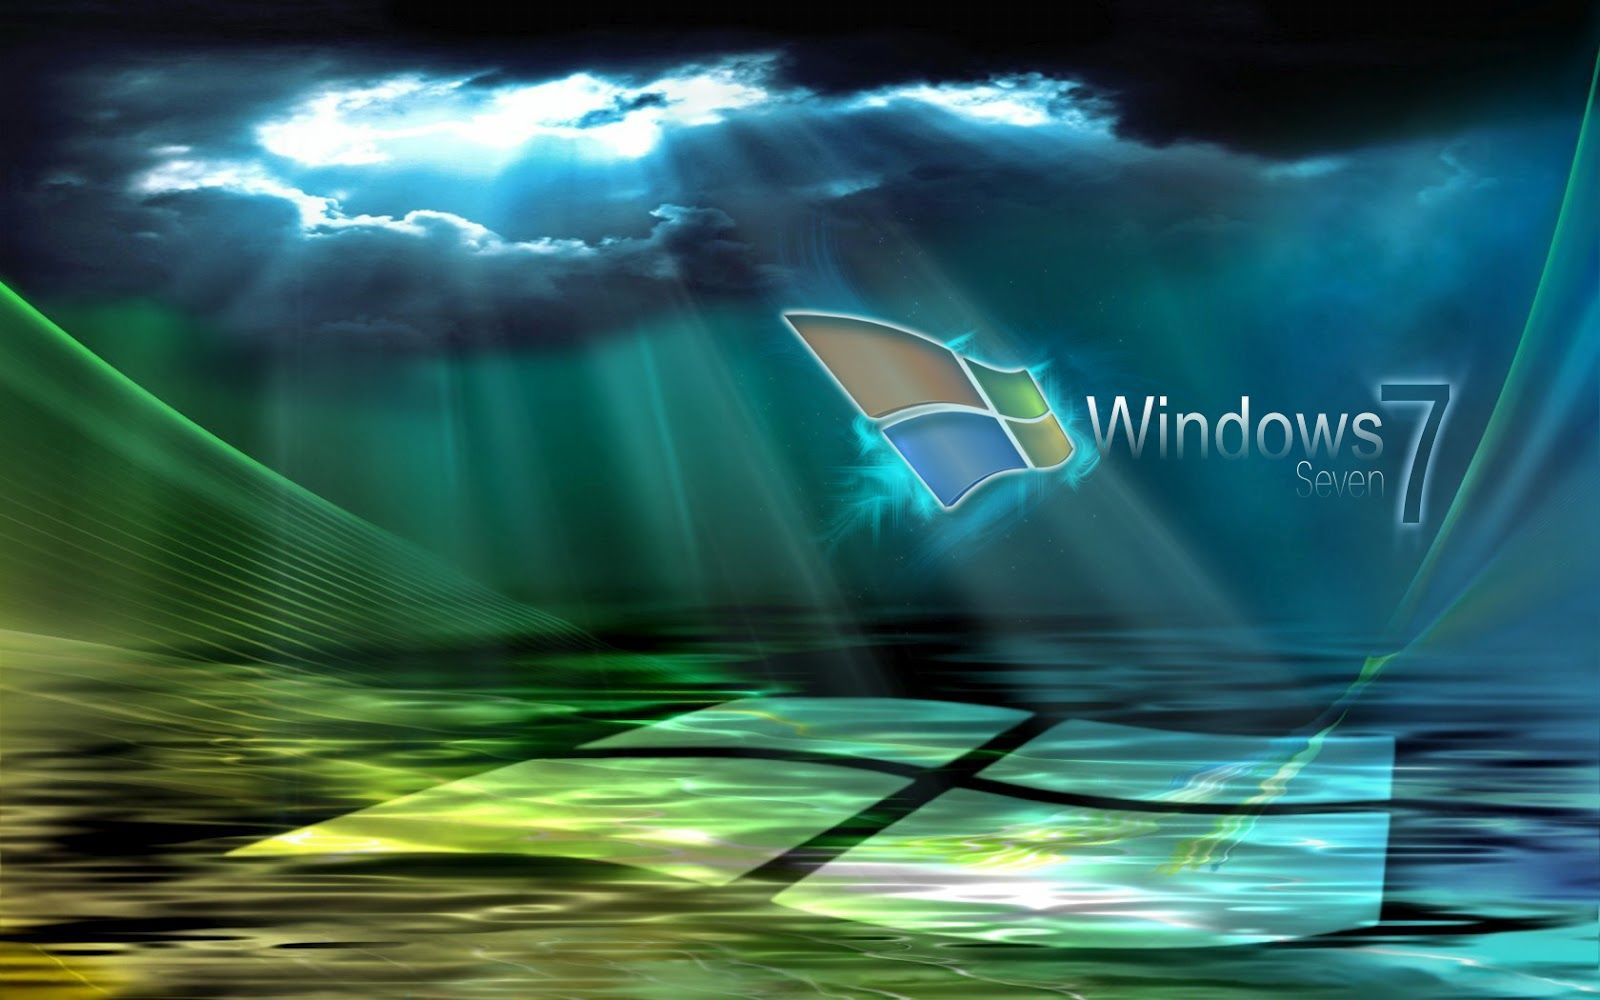 Live Wallpapers For Pc Windows 7 Free Download Hd Wallpapers